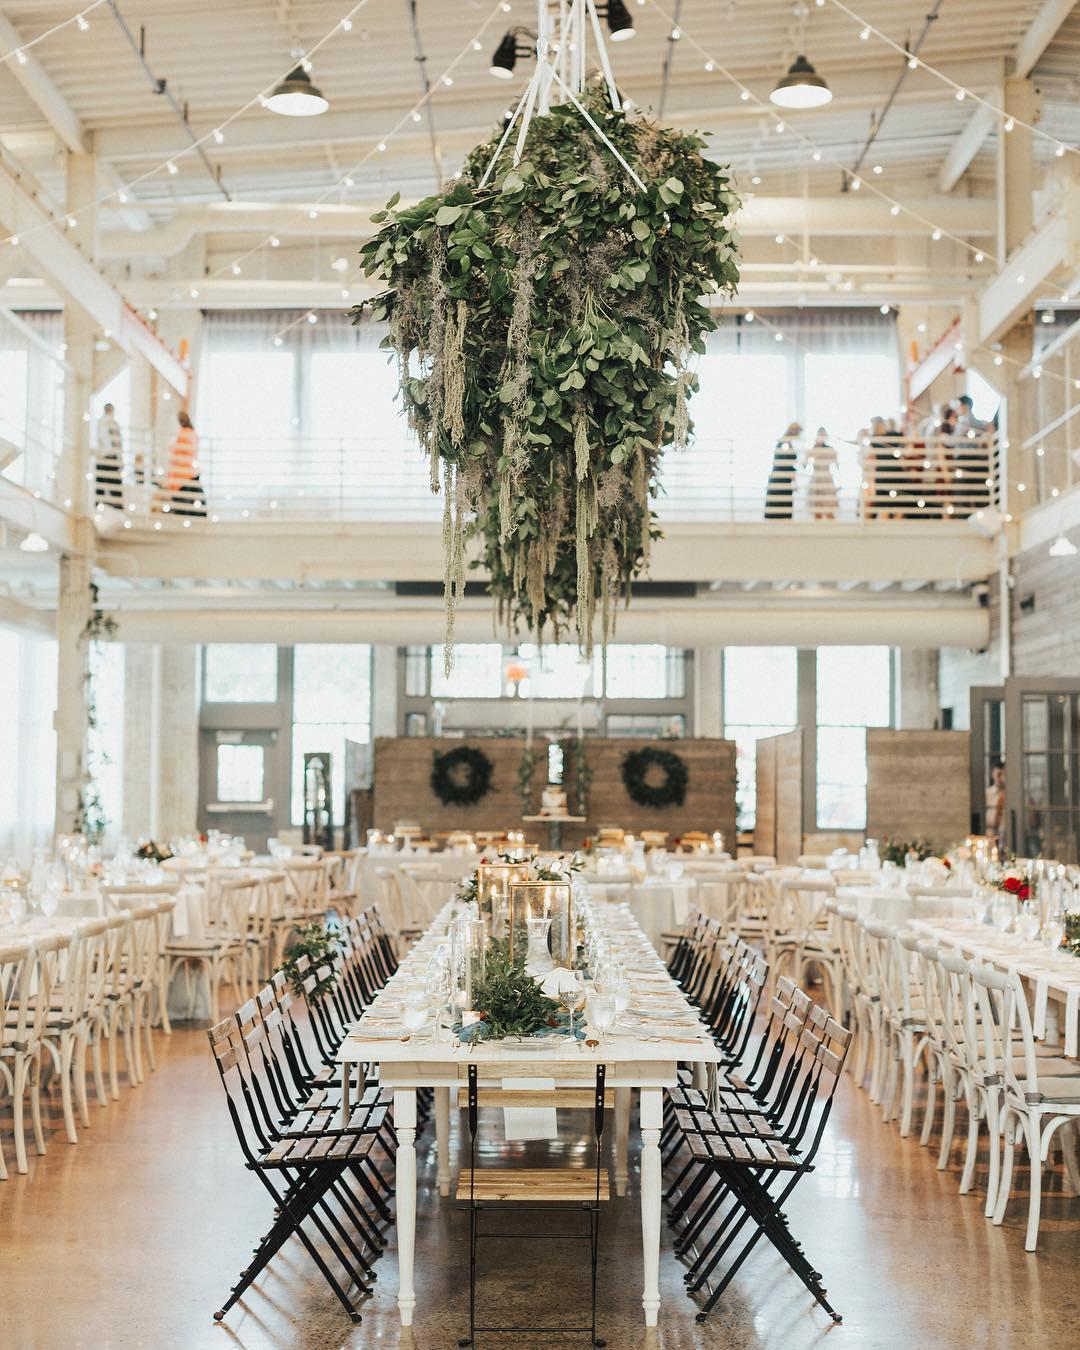 18 Wedding Venues You Need To Know About In The Twin Cities